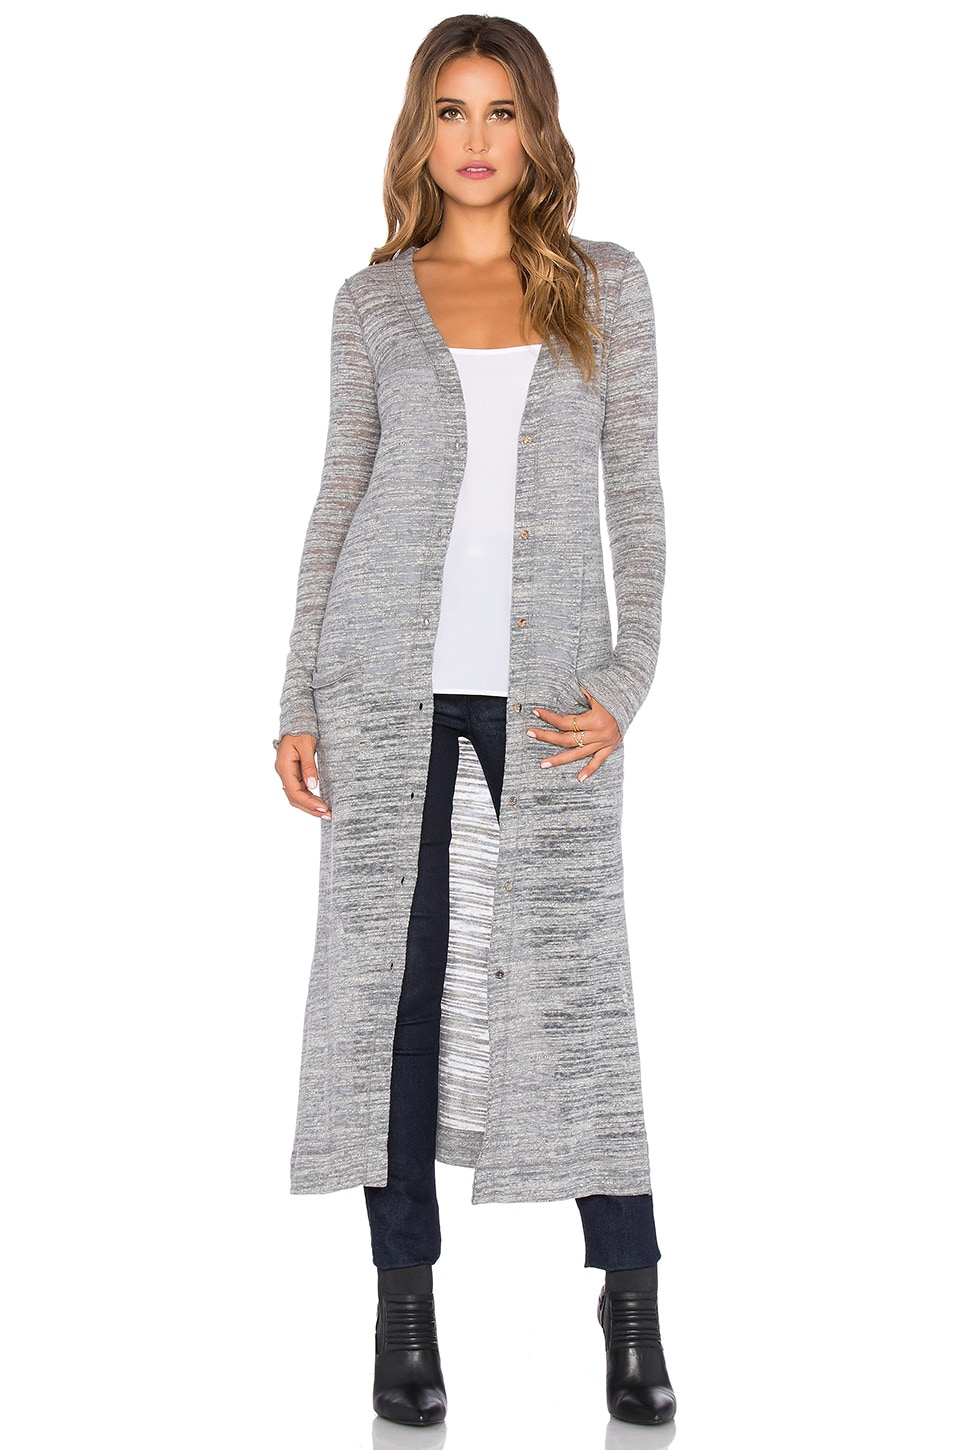 LA Made Cozy Slub Veneto Extra Long Cardigan in Stone | REVOLVE